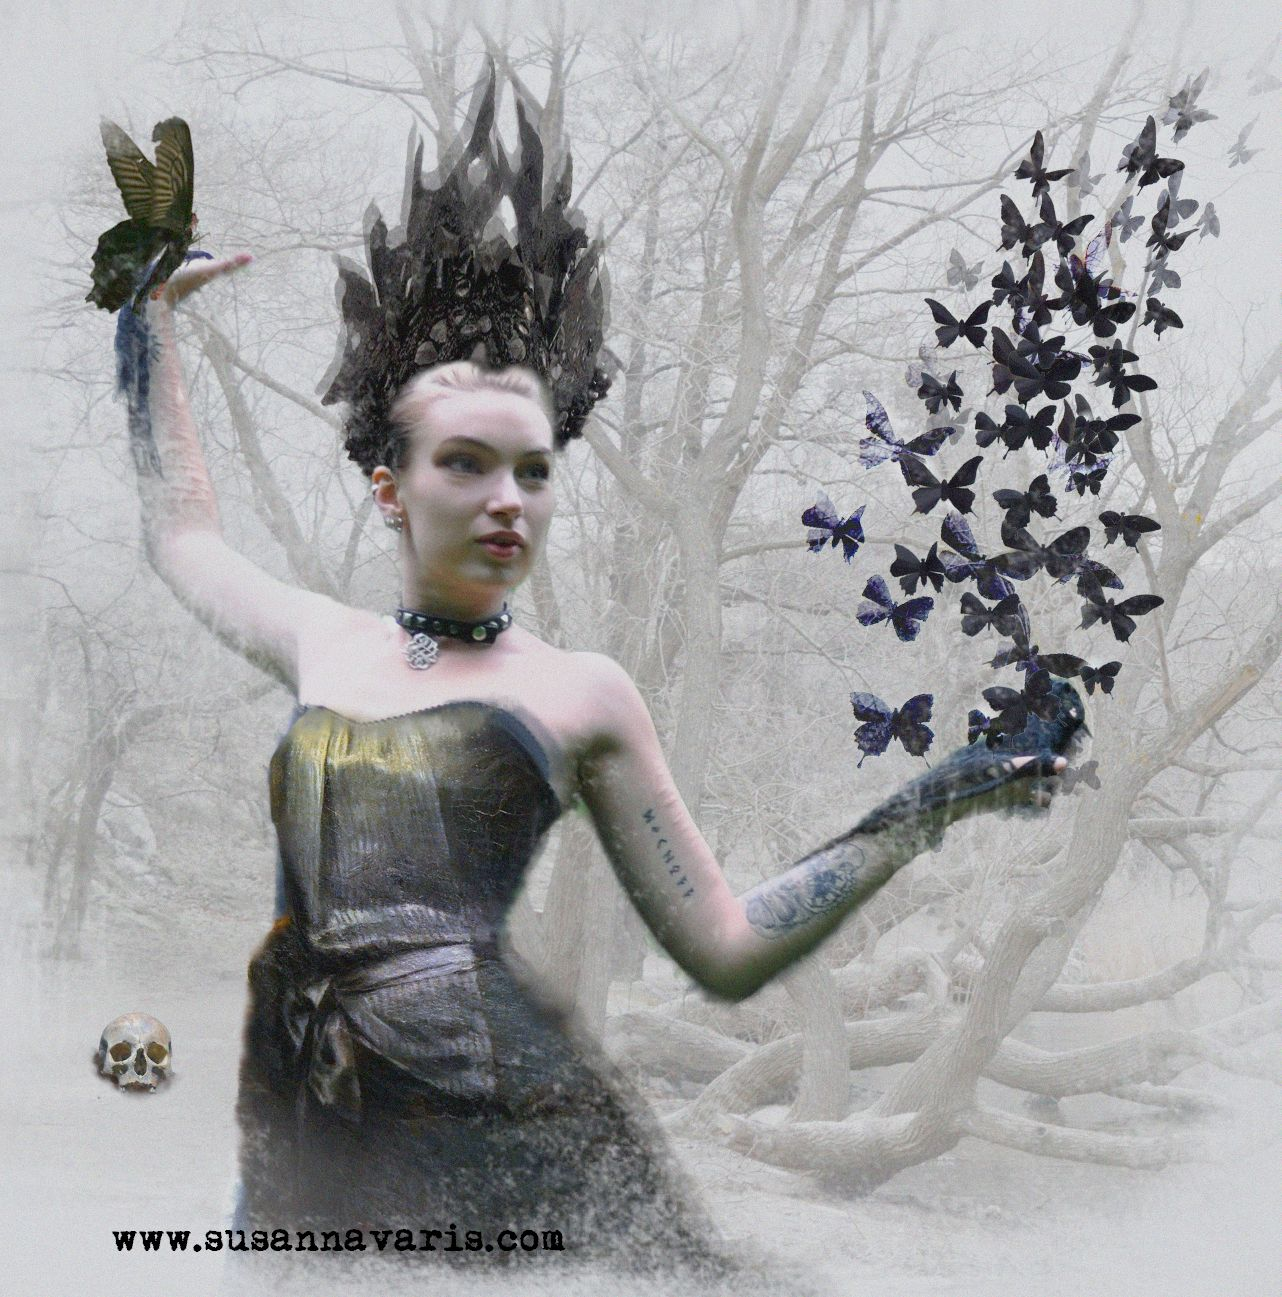 Black Butterfly Queen 2014 png kornig text